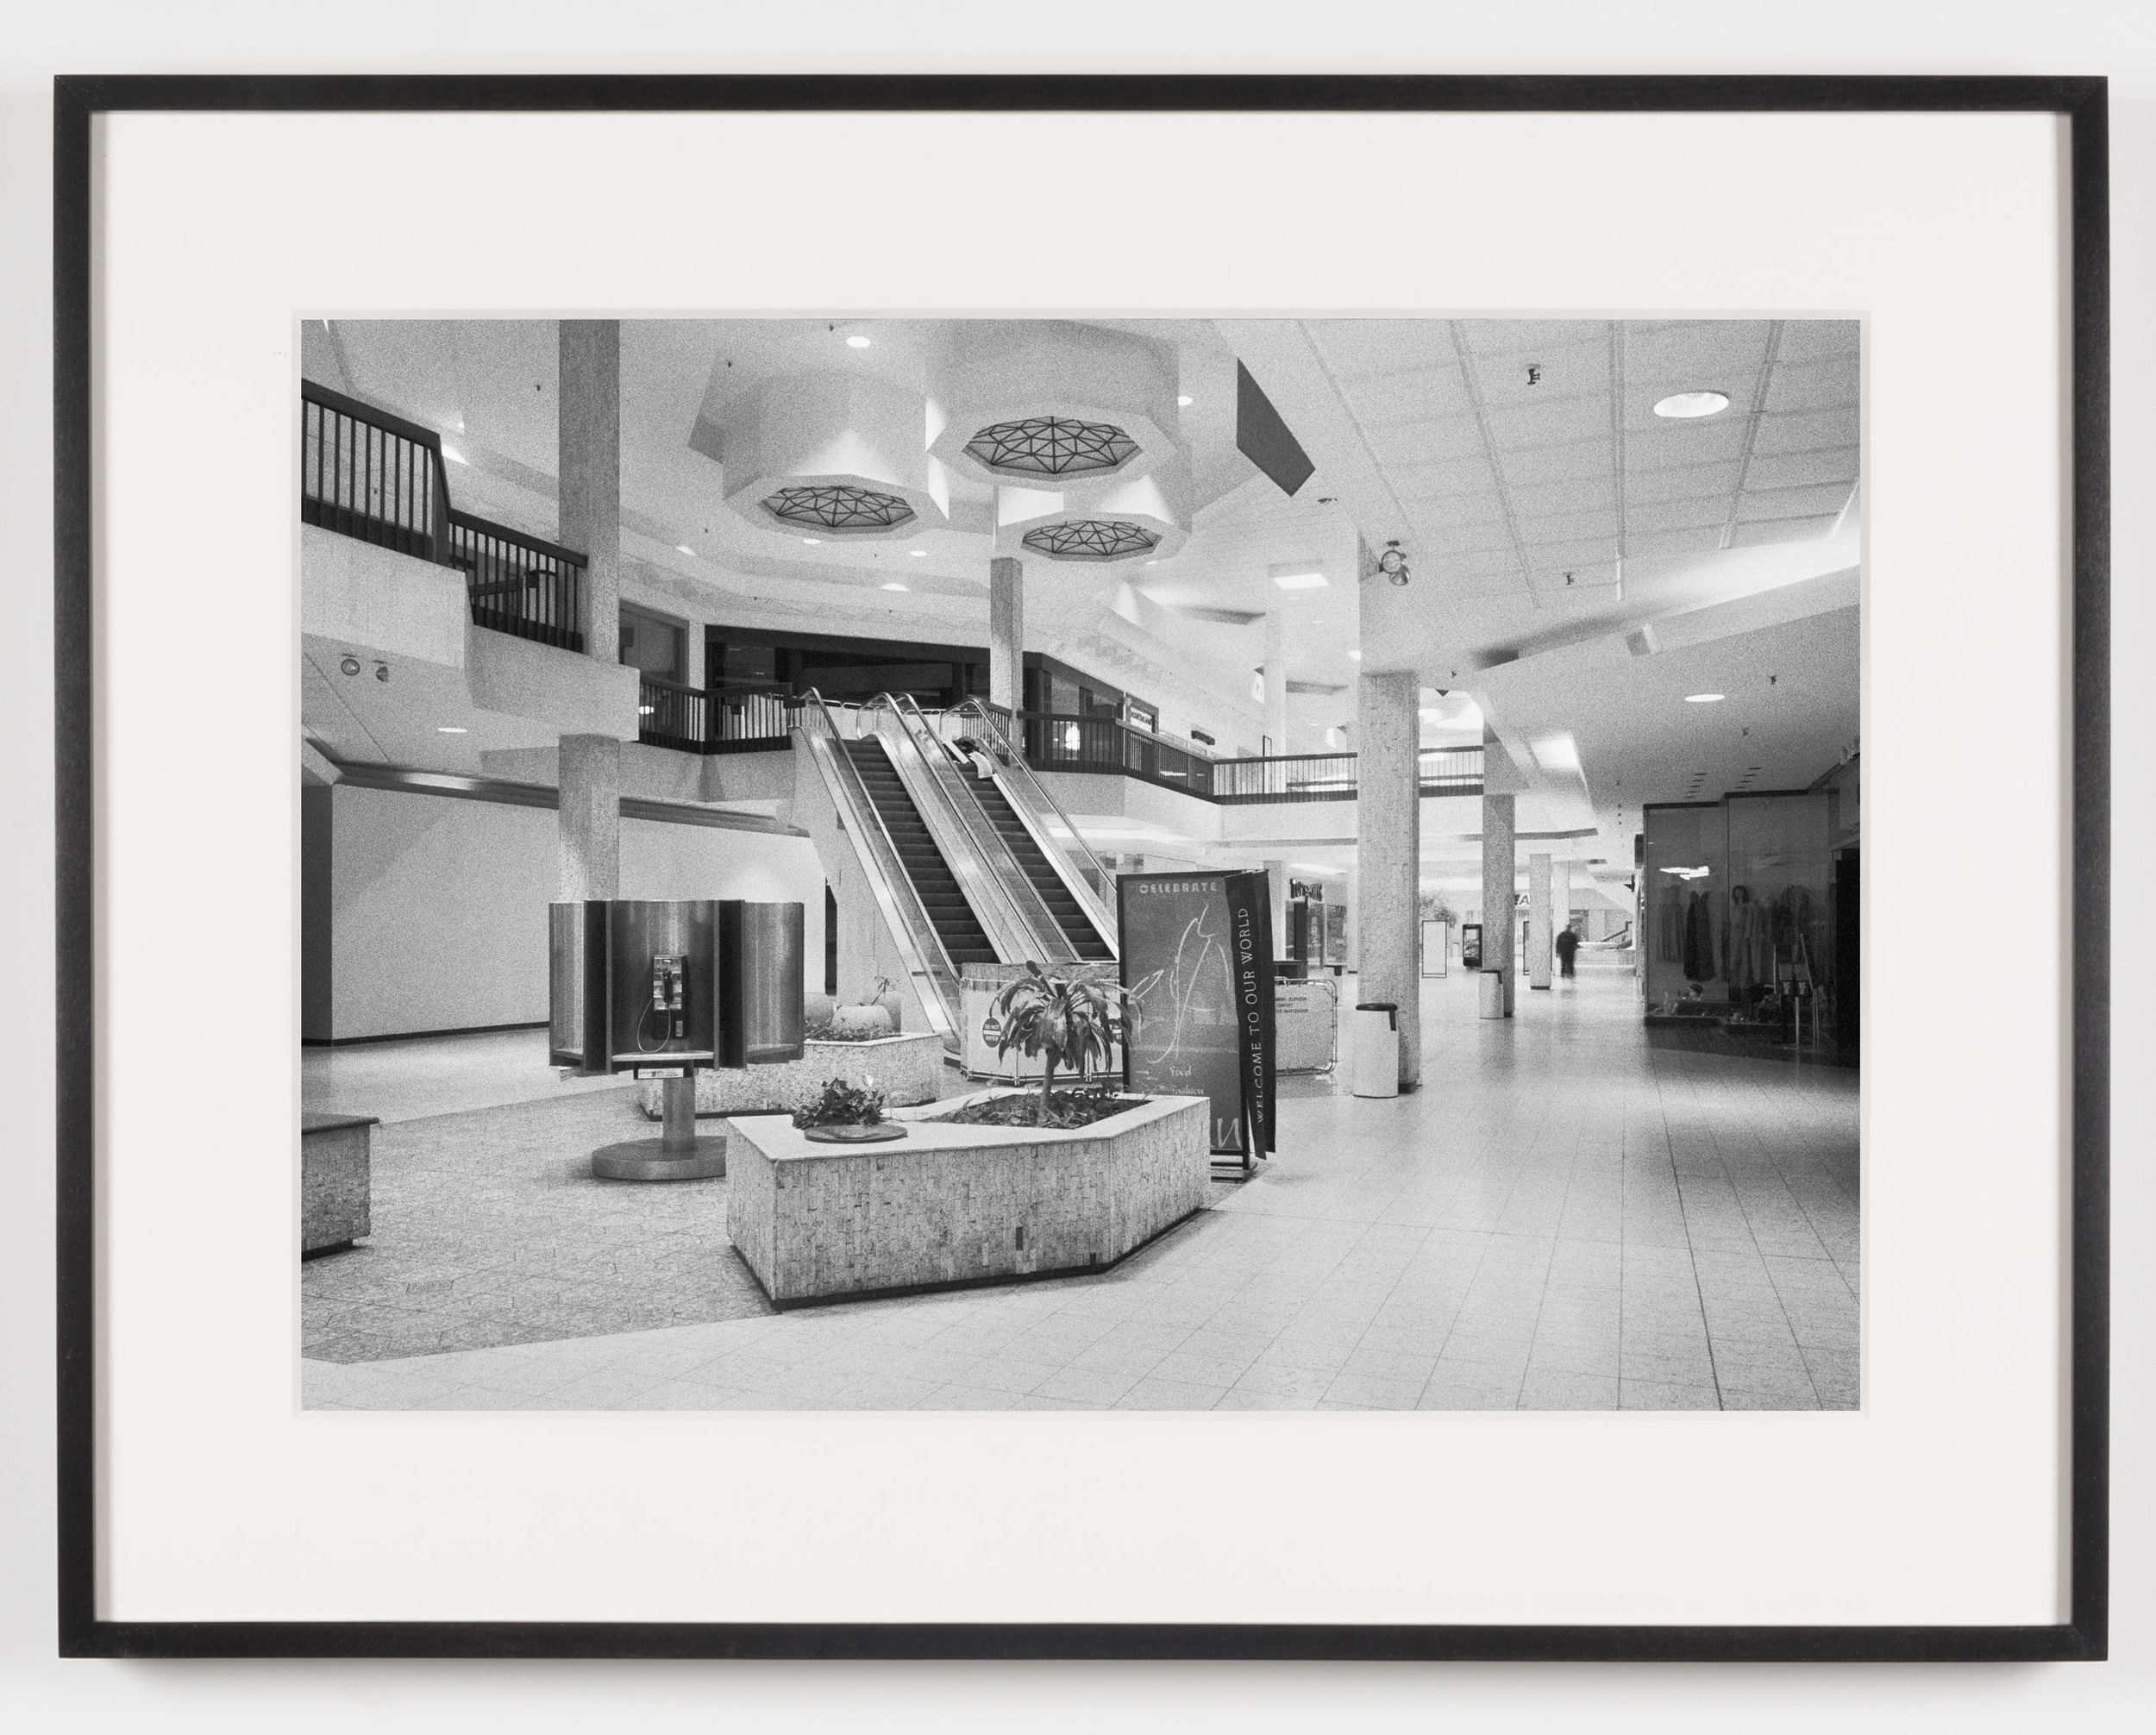 Randall Park Mall (View of Interior), North Randall, OH, Est. 1976, Demo. 2014    2011   Epson Ultrachrome K3 archival ink jet print on Hahnemühle Photo Rag paper  21 5/8 x 28 1/8 inches   American Passages, 2001–2011